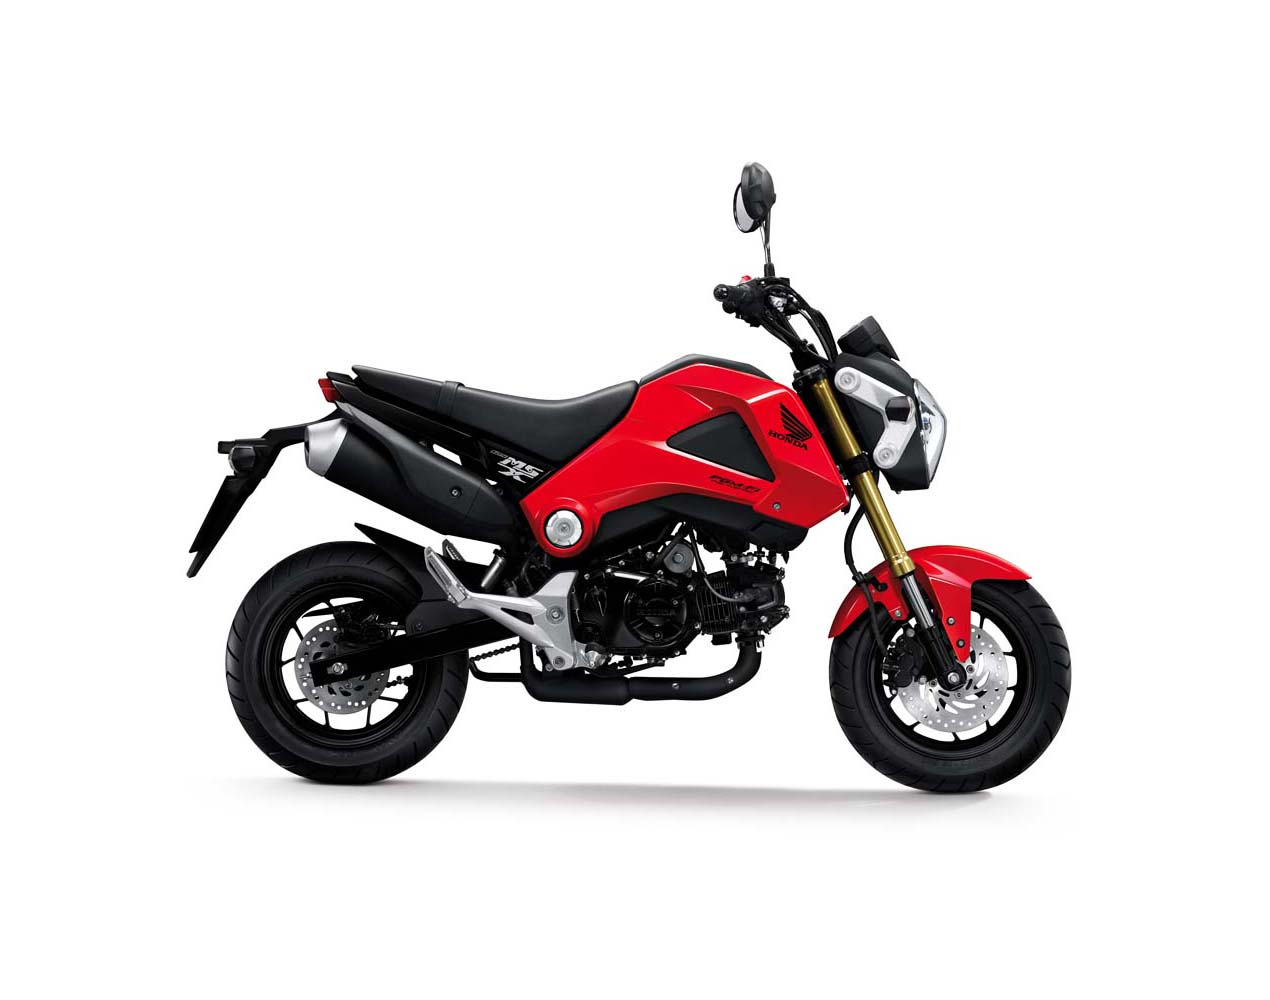 2014 Honda Grom Perfect Small City Motorcycle Welcome